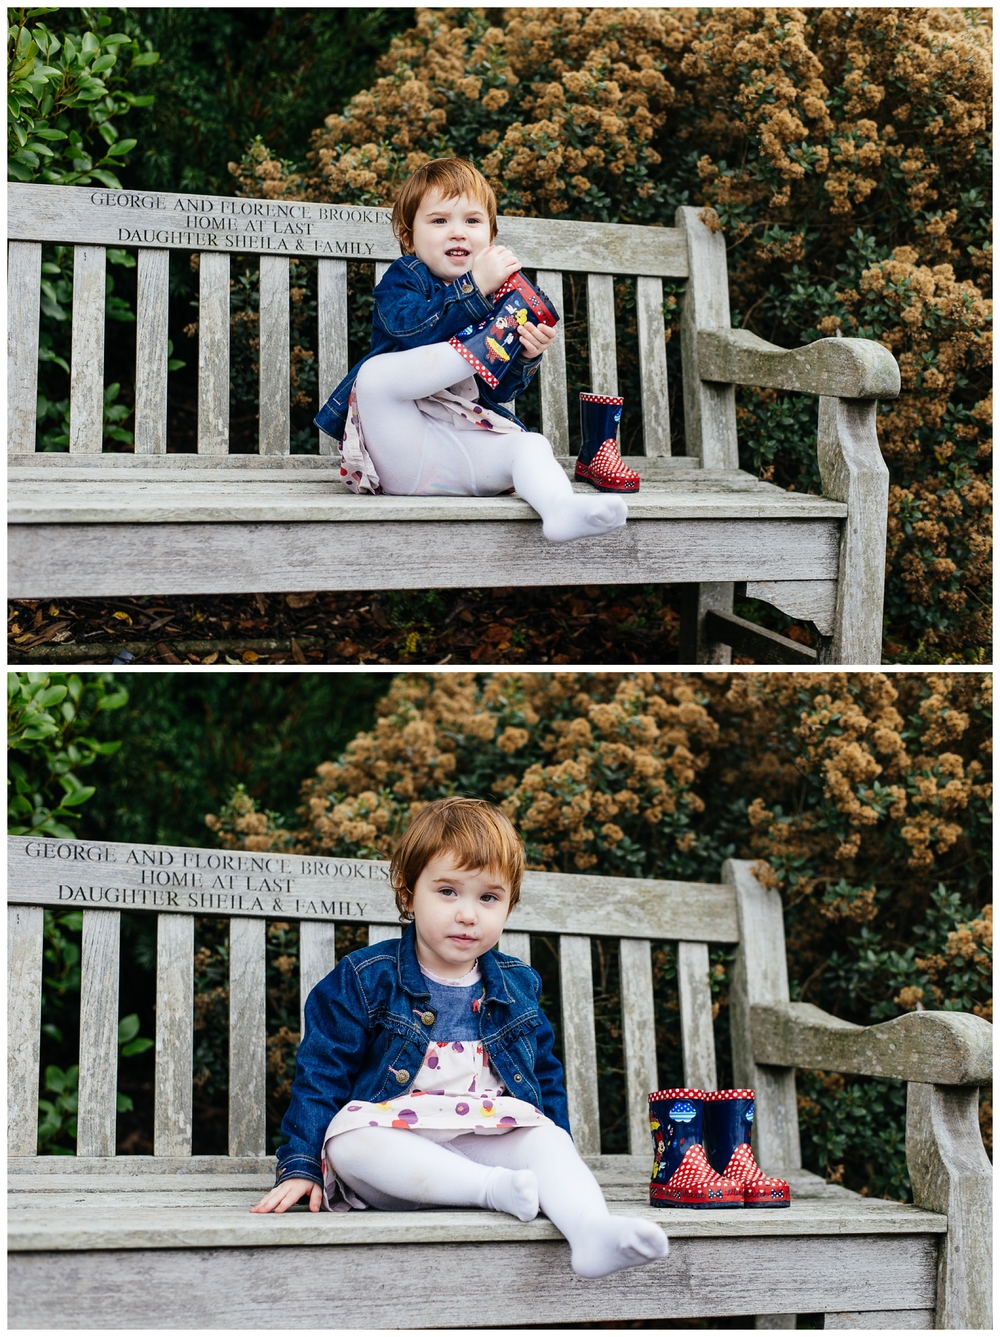 Autumn-family-portraits-birmingham-photographer_0035.jpg